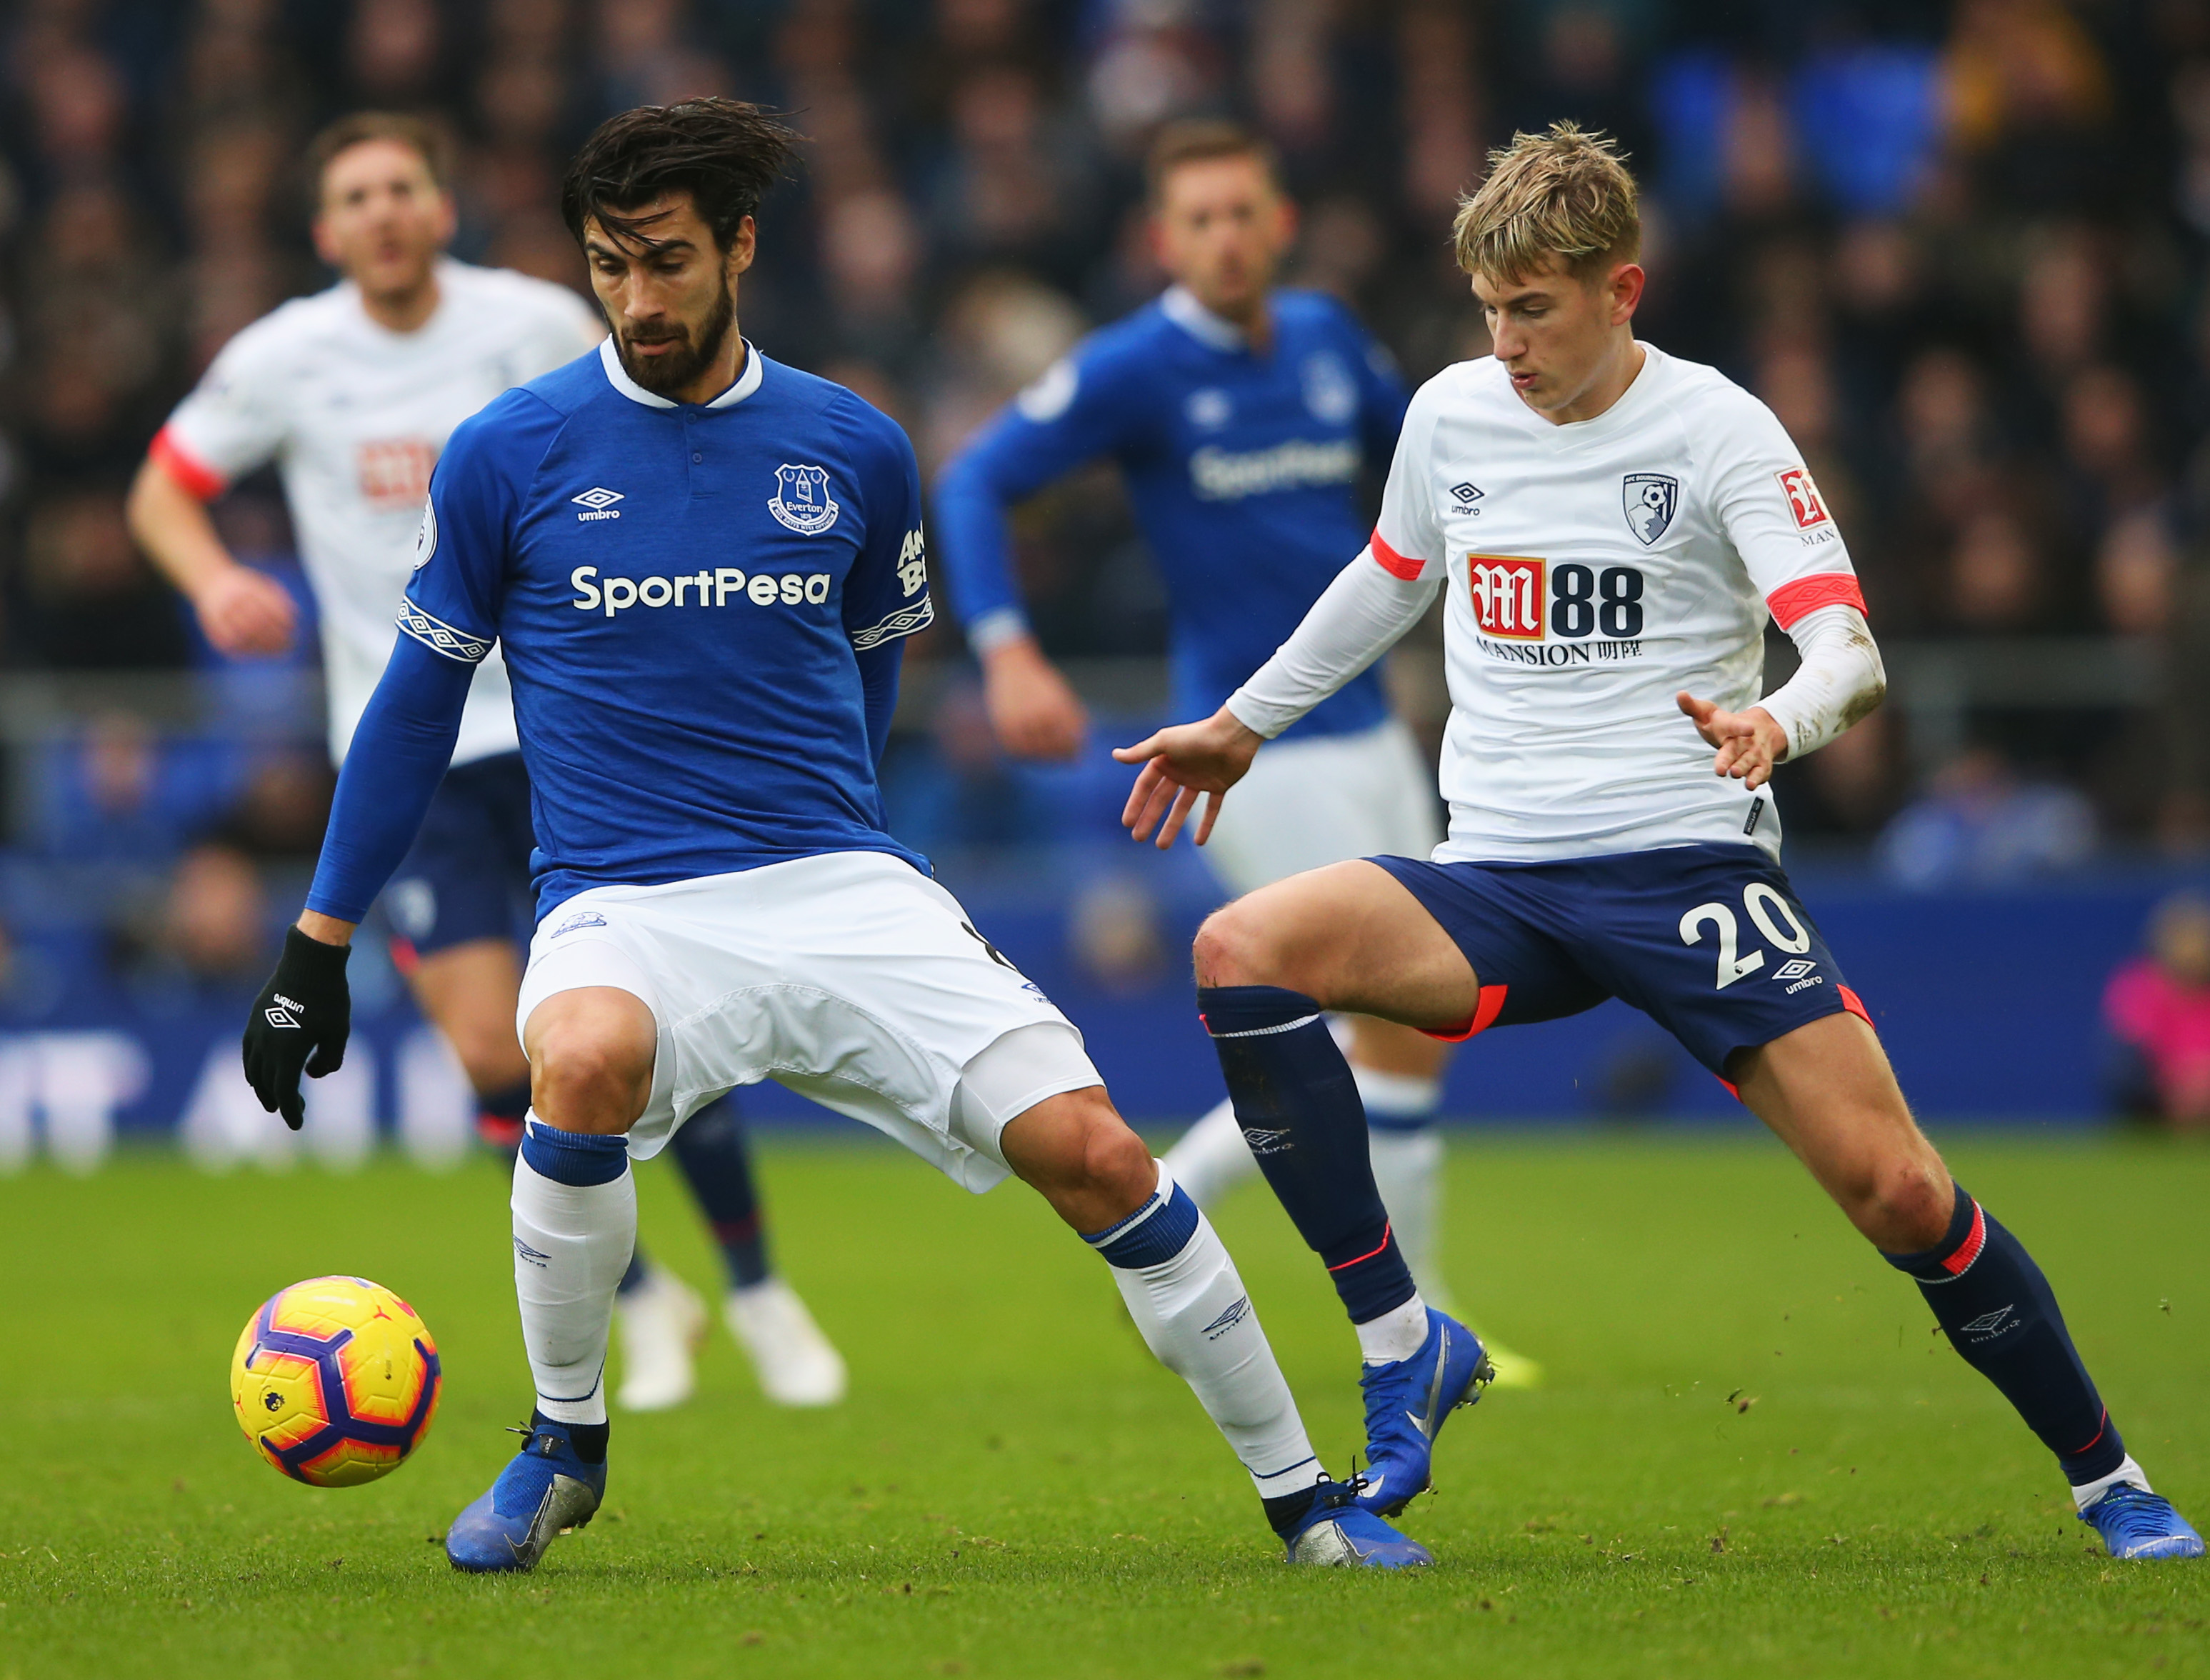 Everton could sign André Gomes for less than expected